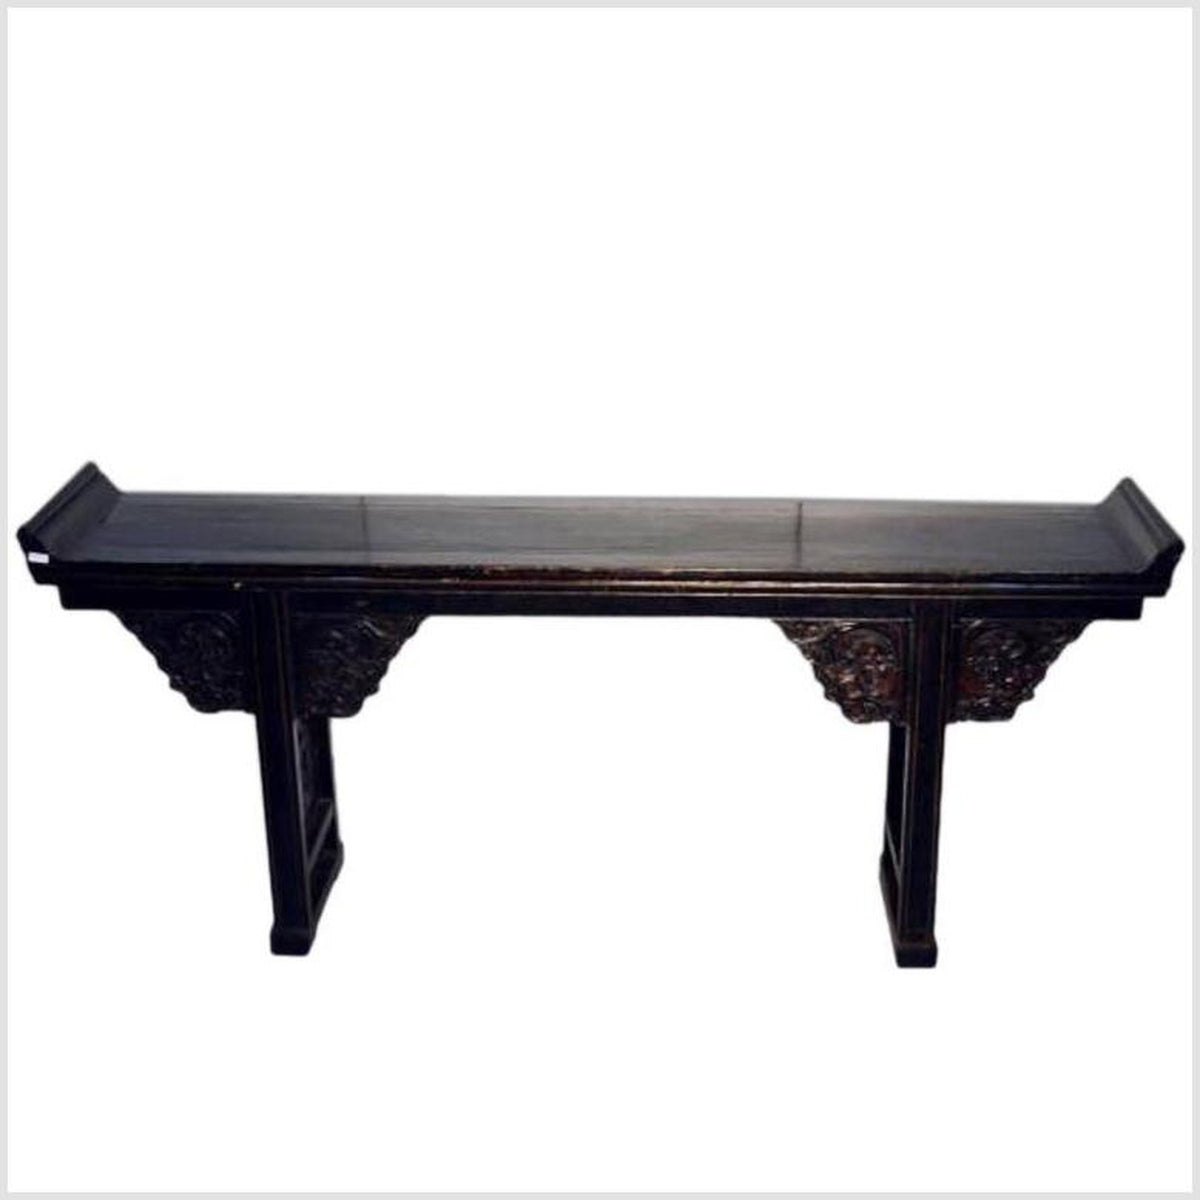 Antique Black Lacquer Console Table with Carved Details from China, circa 1800s